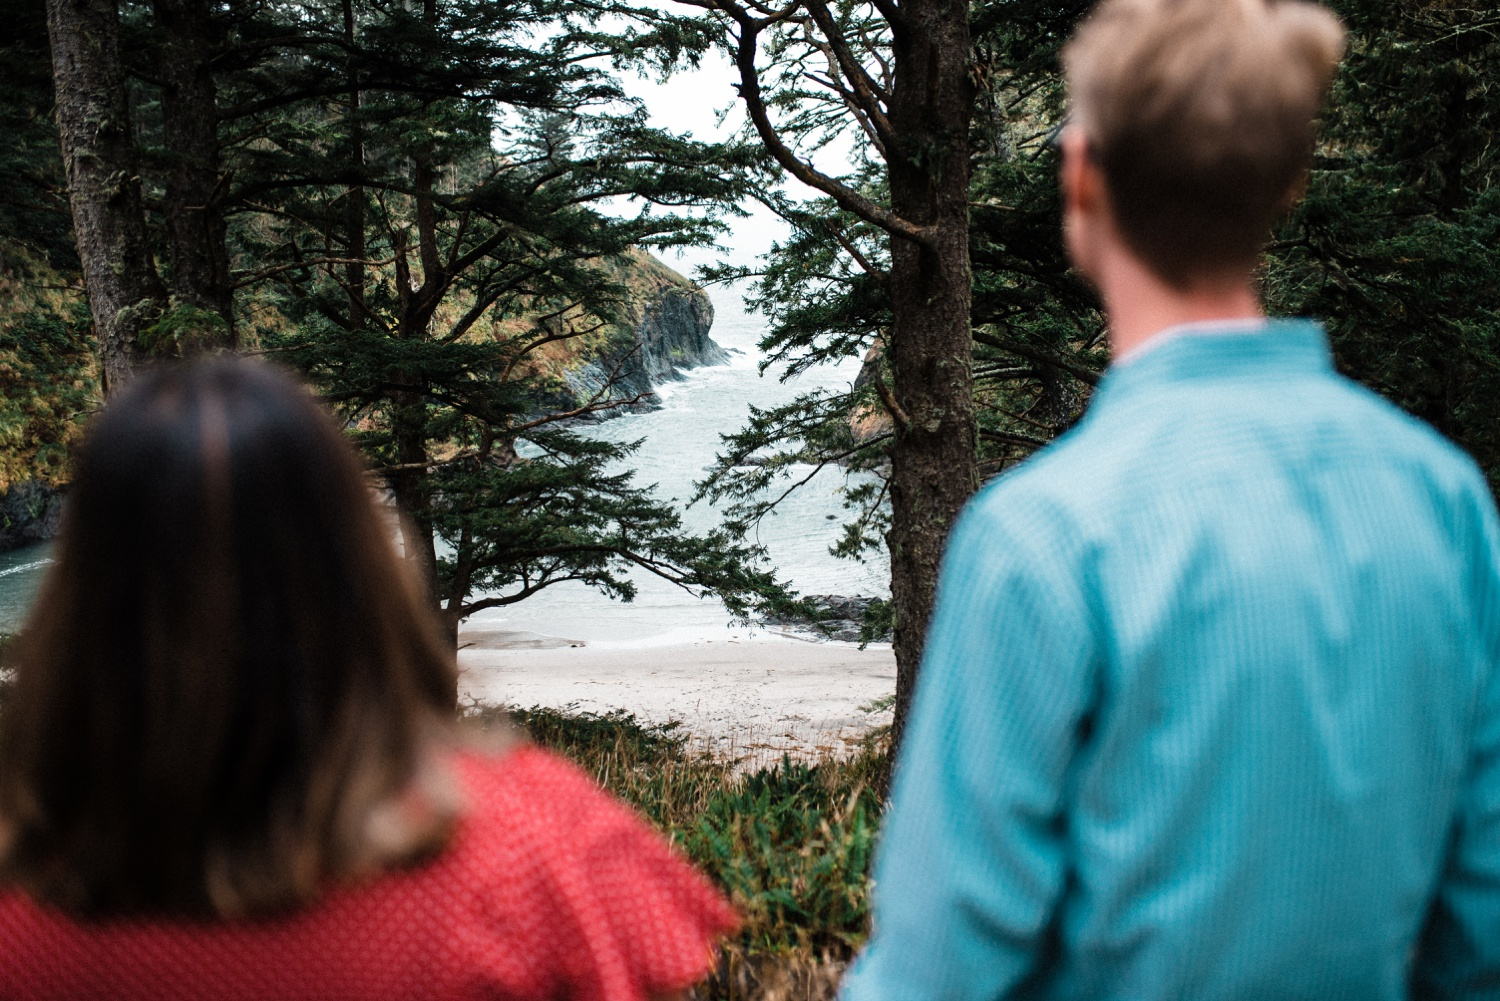 Cape_Disappointment_Engagement_Kailey_Alex_The_Foxes_Photography_034.jpg